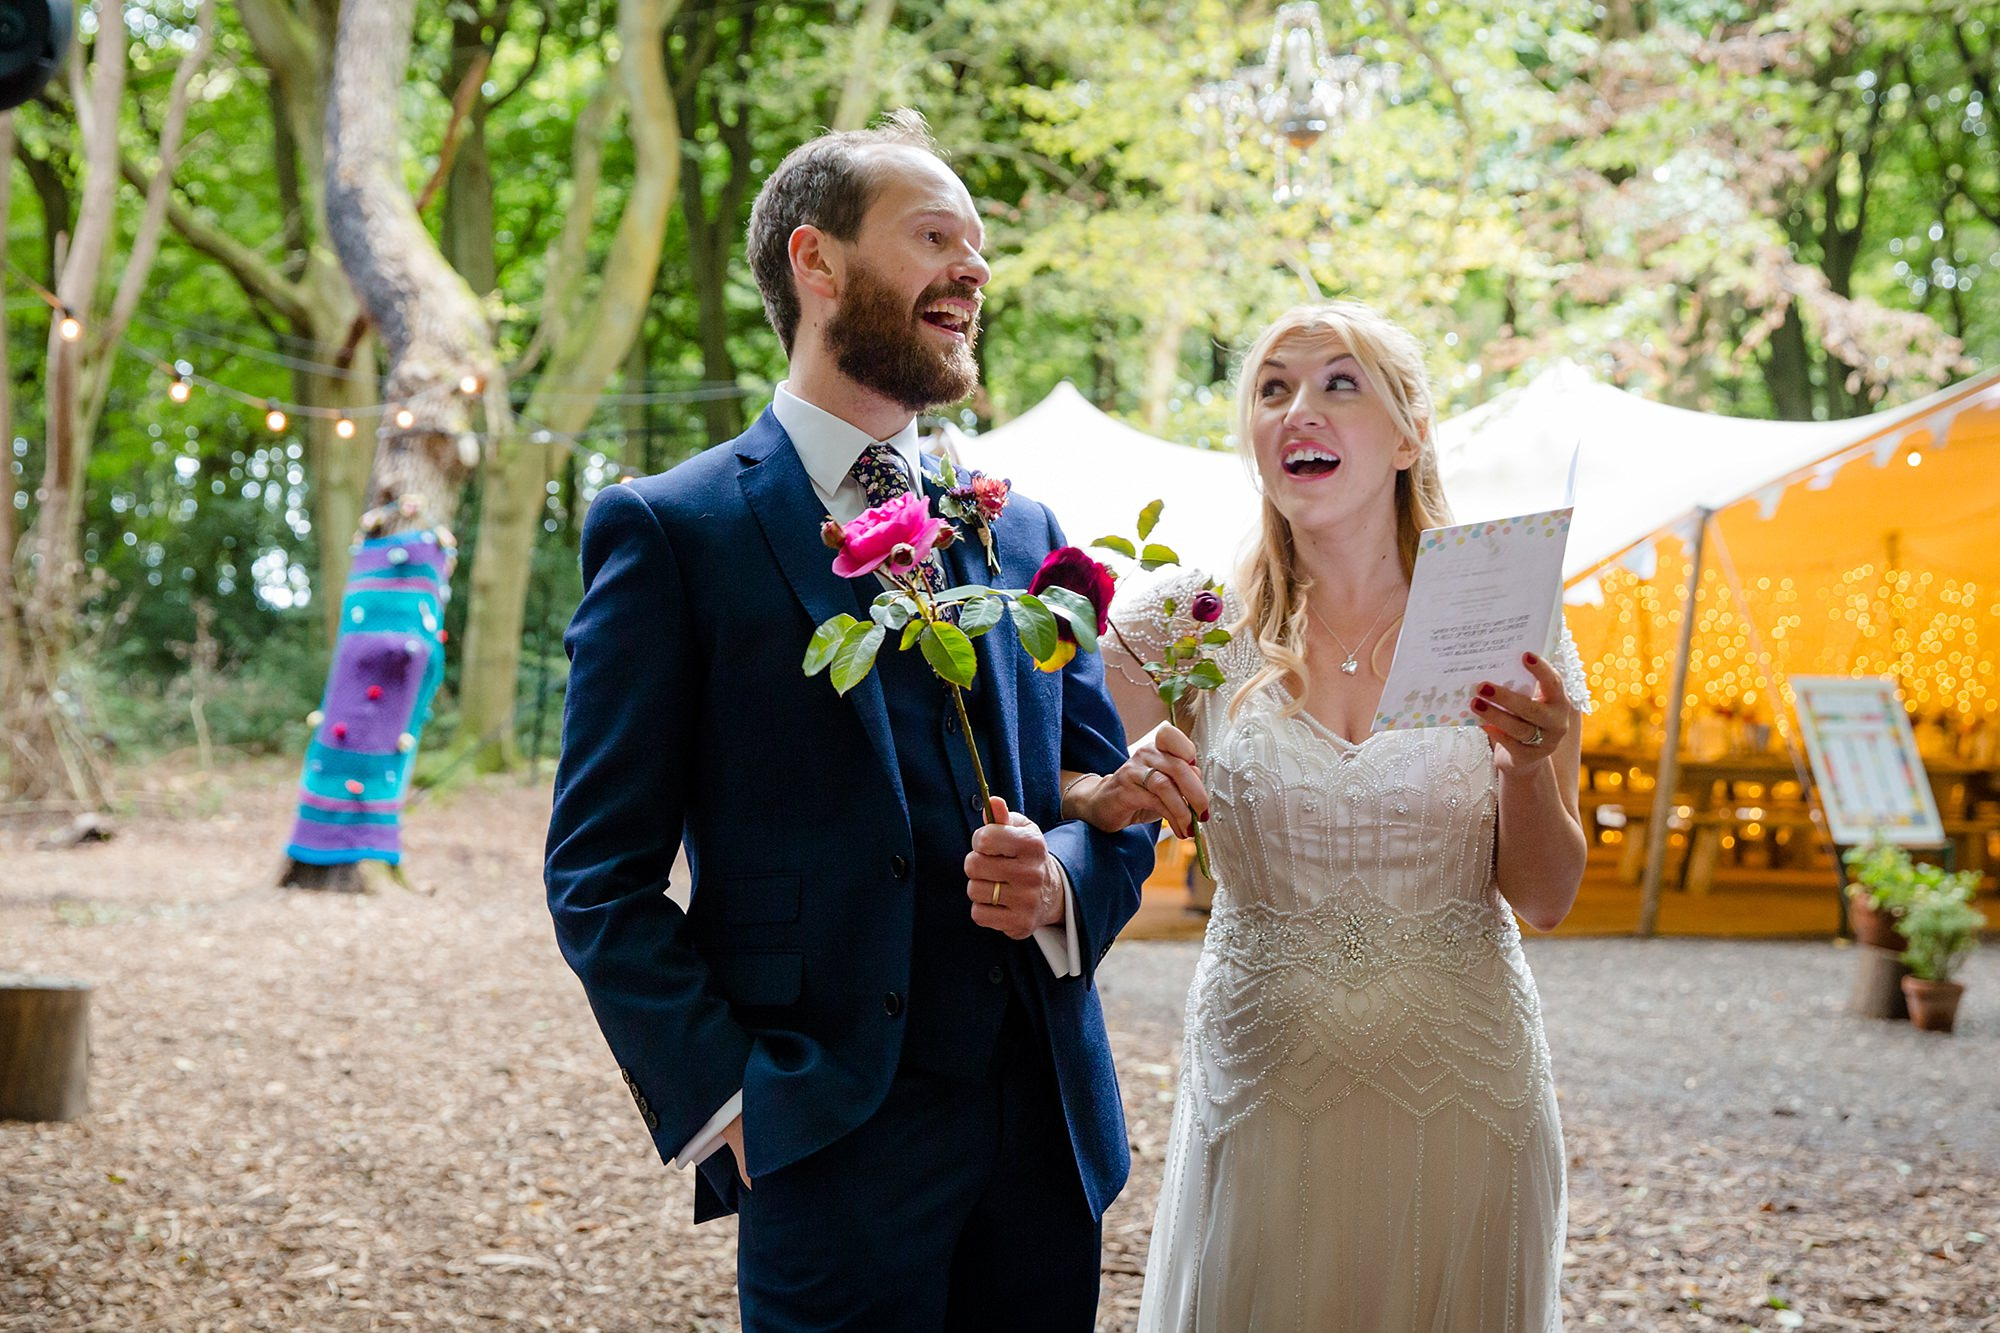 Woodland Weddings Tring bride and groom singing